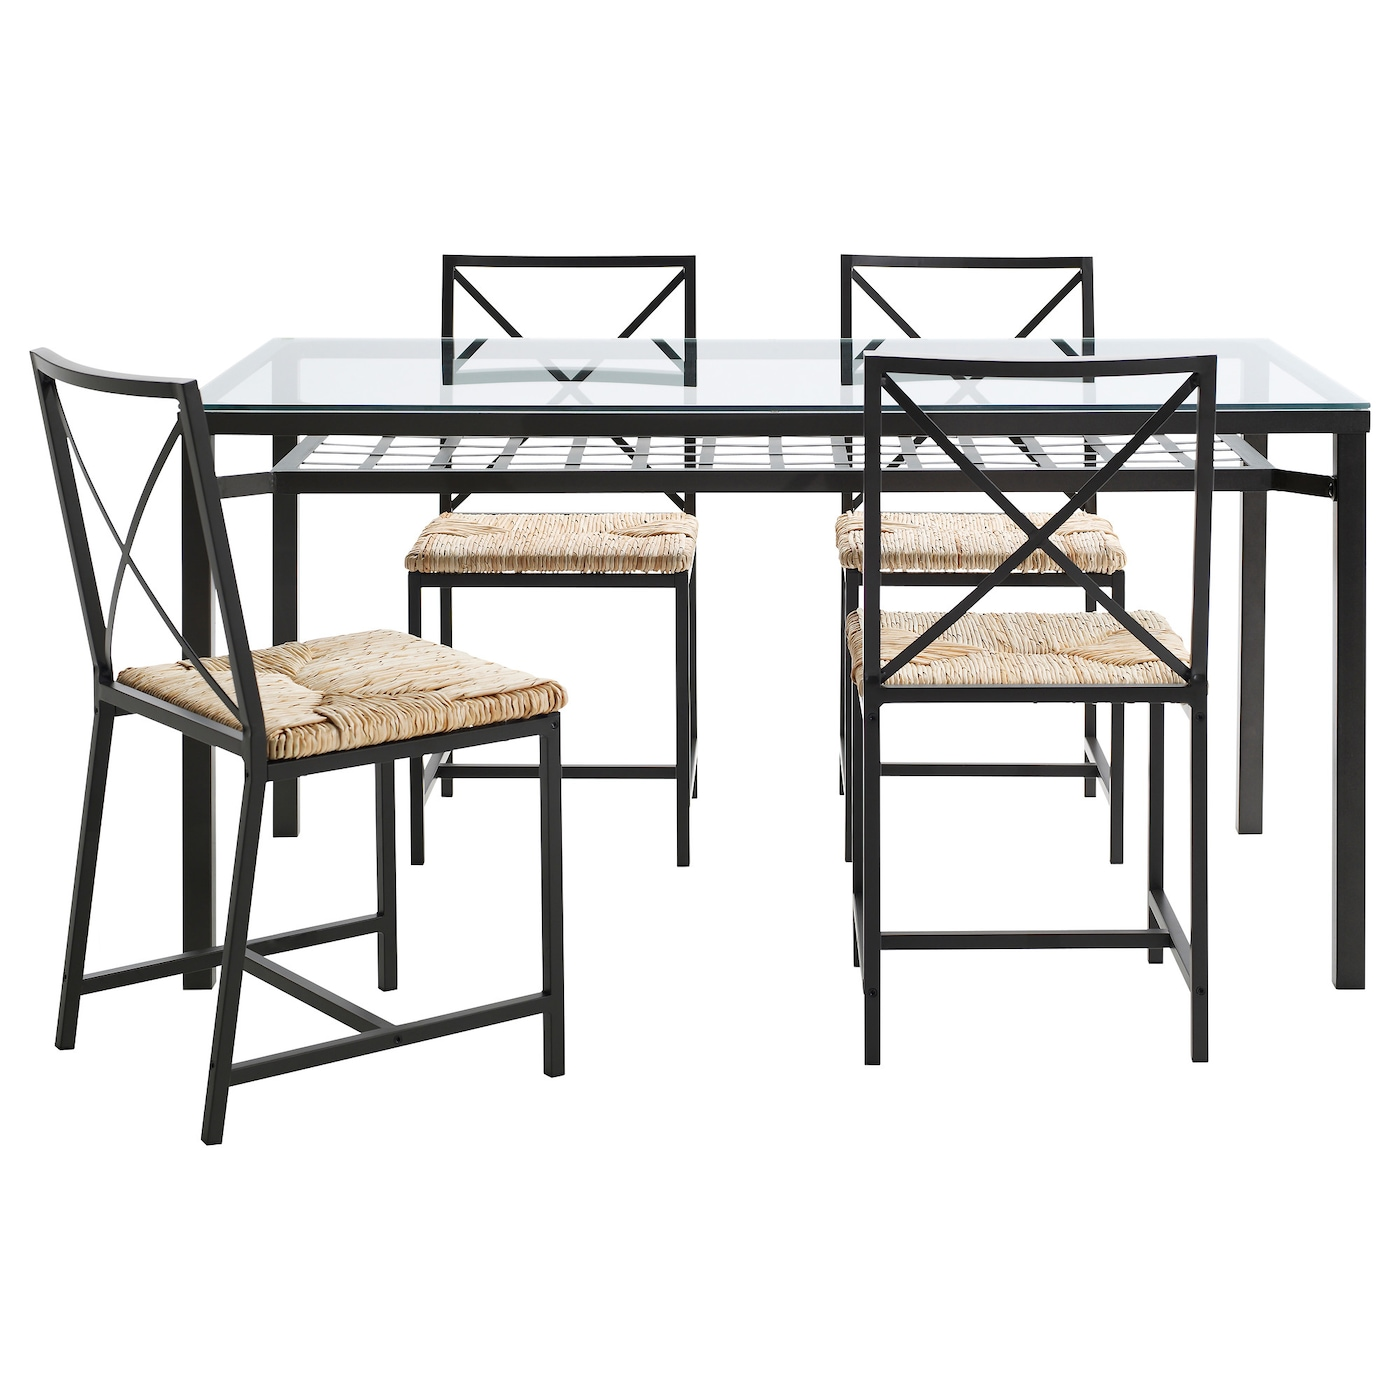 GRANÅS Table and 4 chairs Black/glass - IKEA